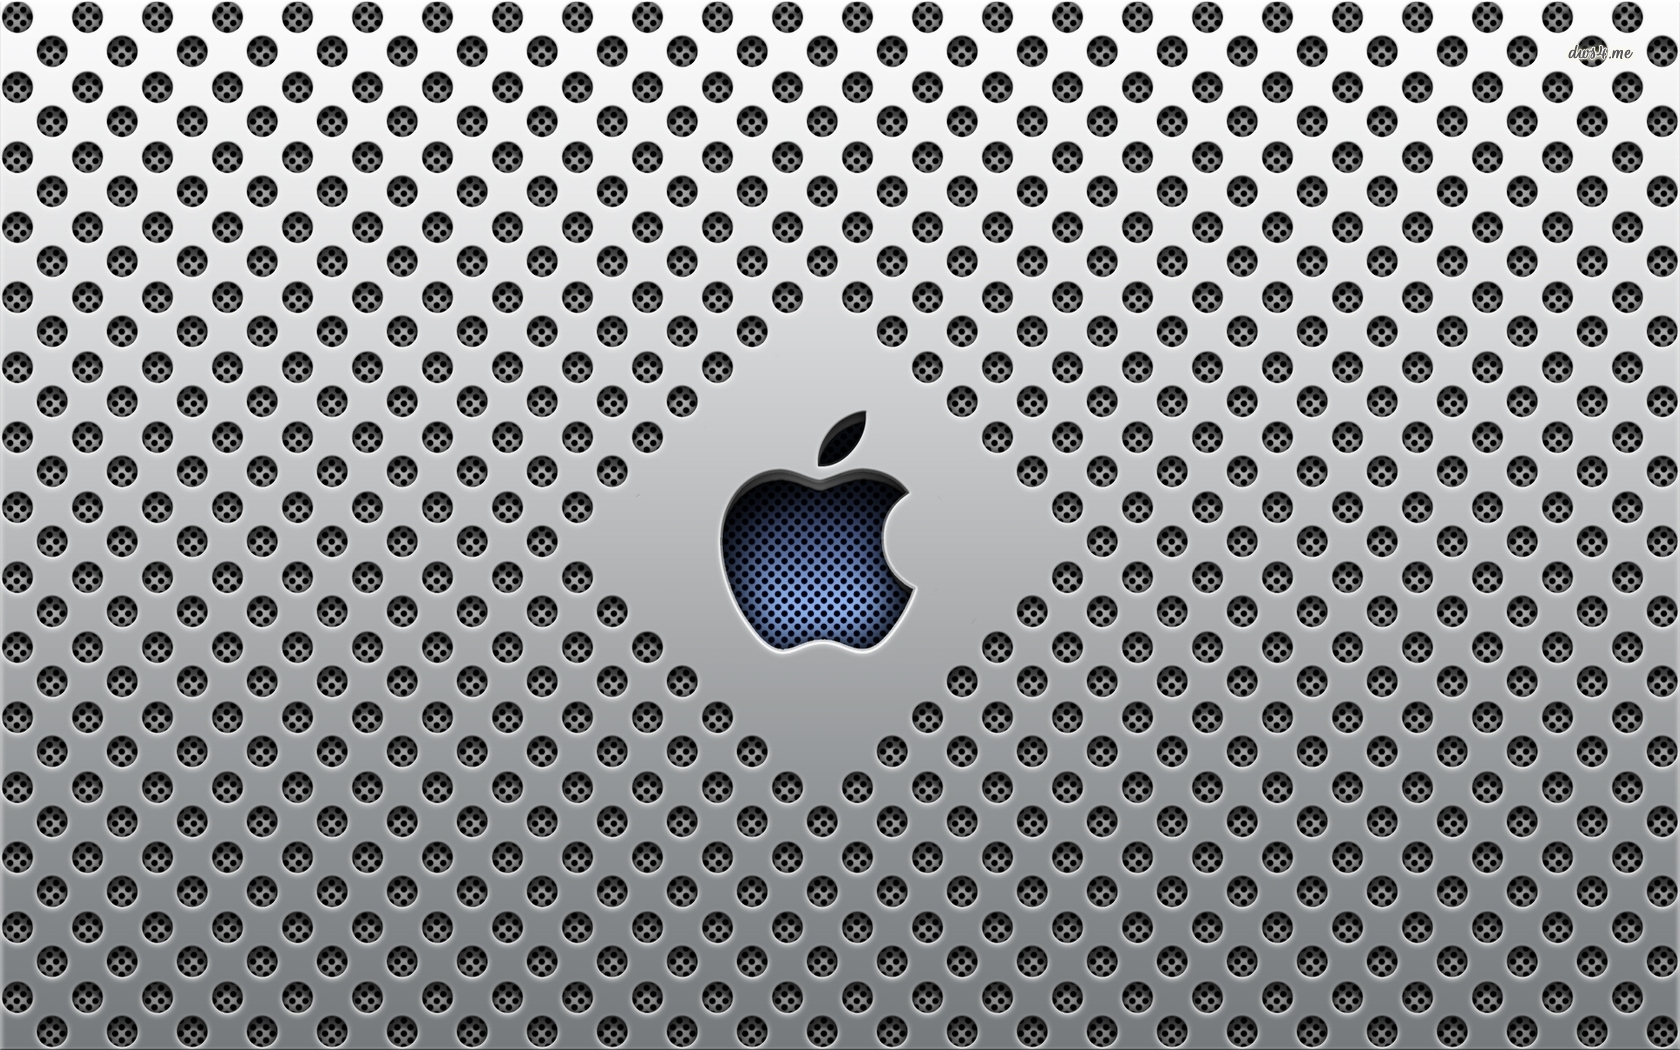 Apple Logo Wallpapers HD grey gray dotted